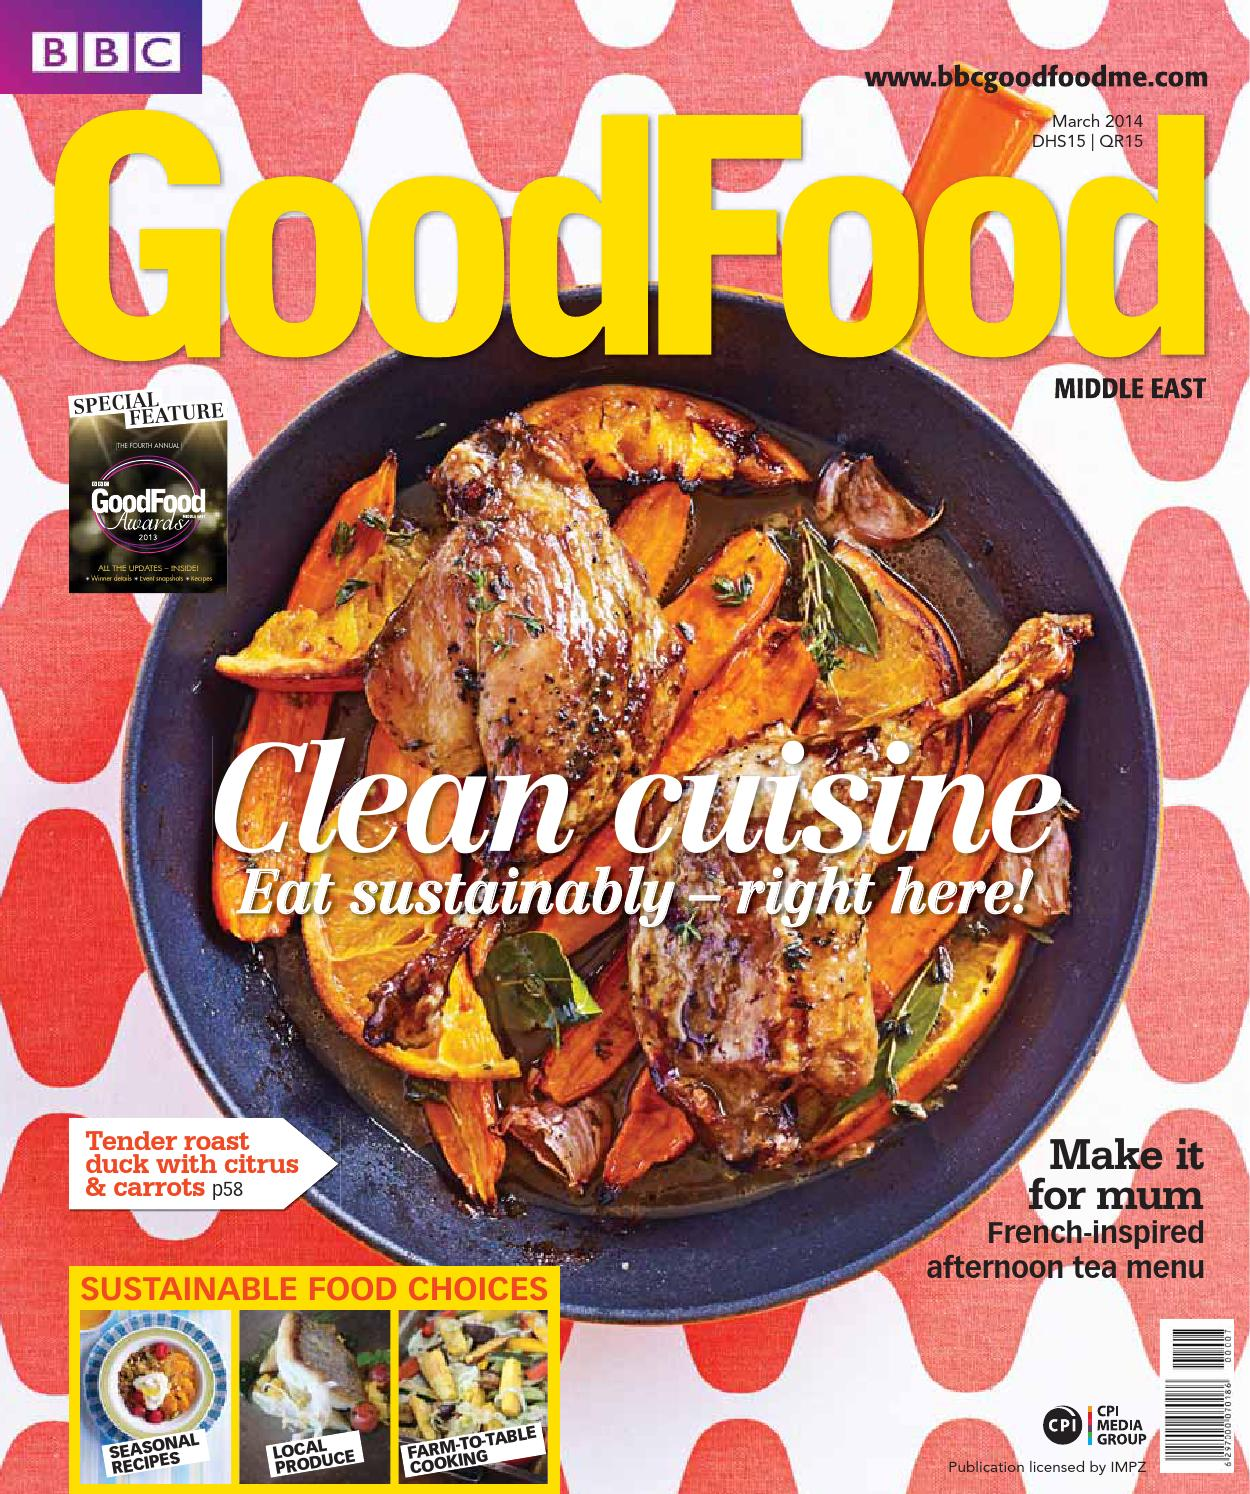 BBC Good Food ME 2014 March By BBC Good Food ME Issuu